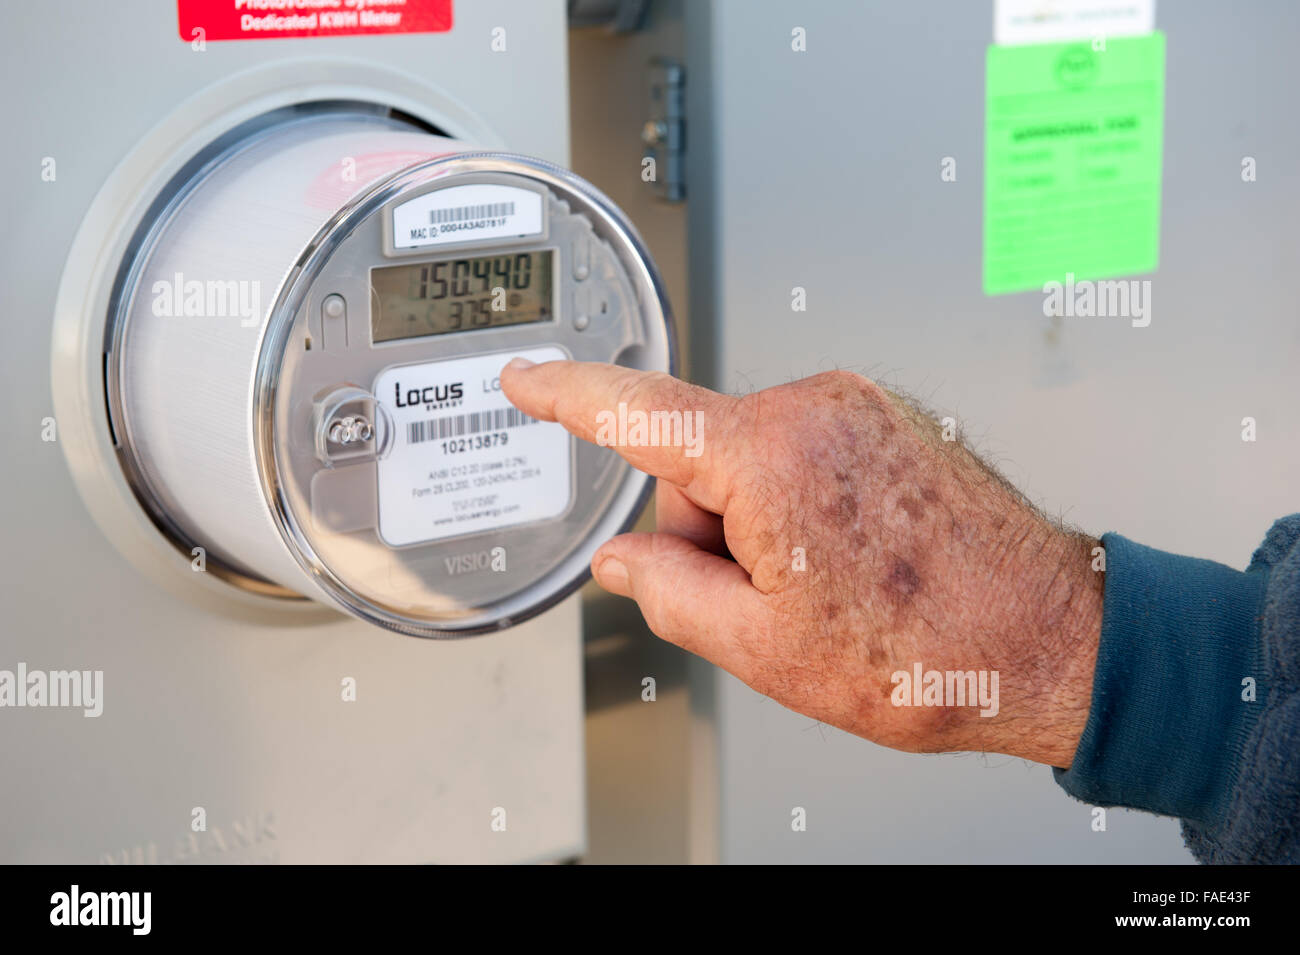 Man's hand pointing to an electric meter - Stock Image